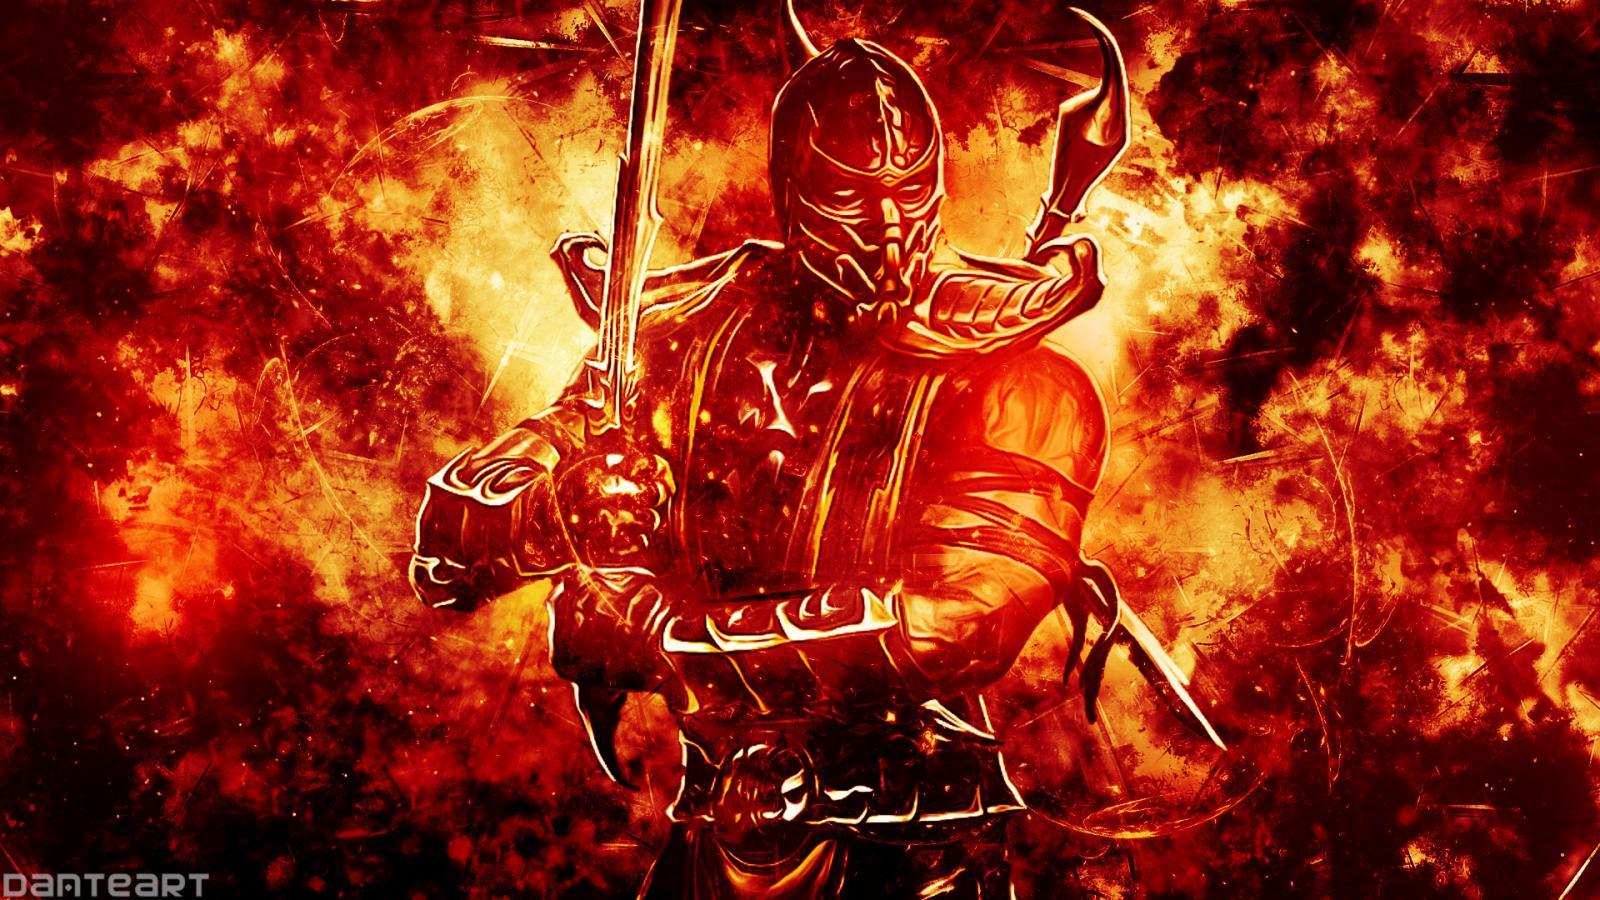 Pictures of scorpion from mortal kombat on fire with hd - Mortal kombat scorpion wallpaper ...